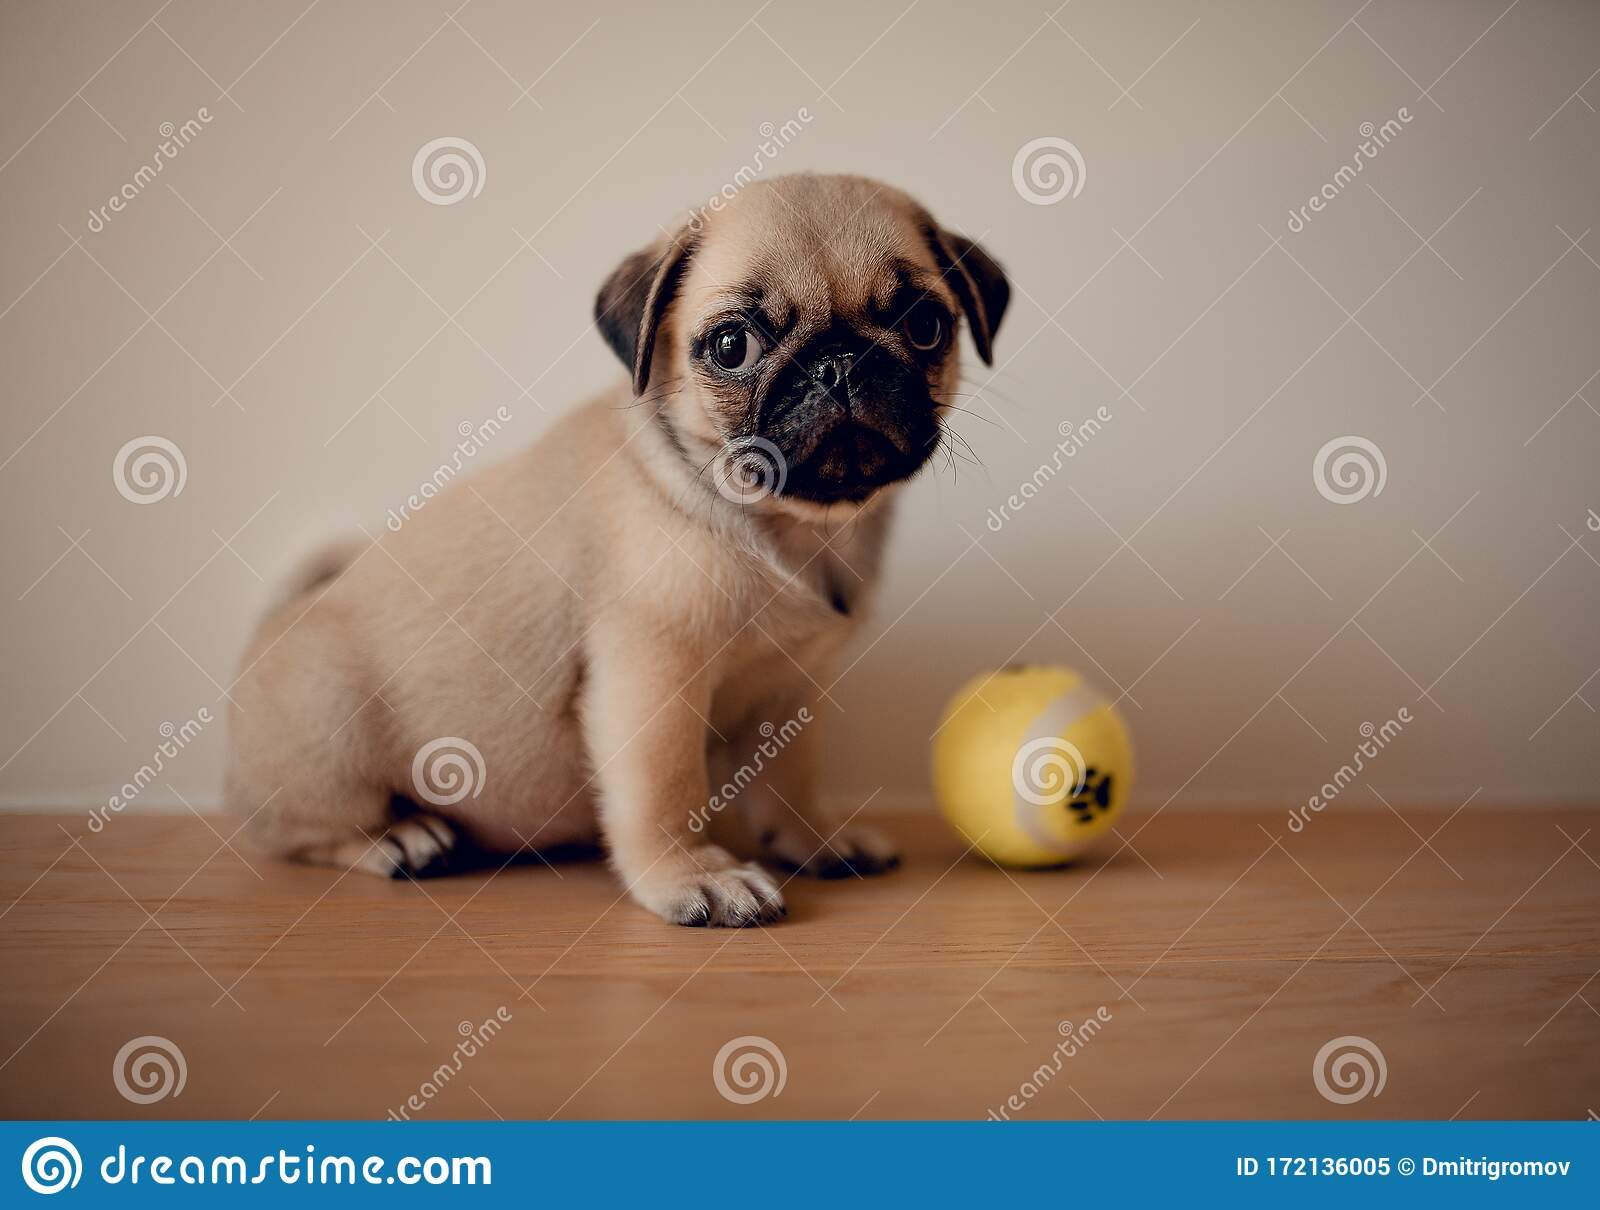 Baby Cute Female Puppy Pug Dog With Toy In Home Stock Image Image Of Female Closeup 172136005